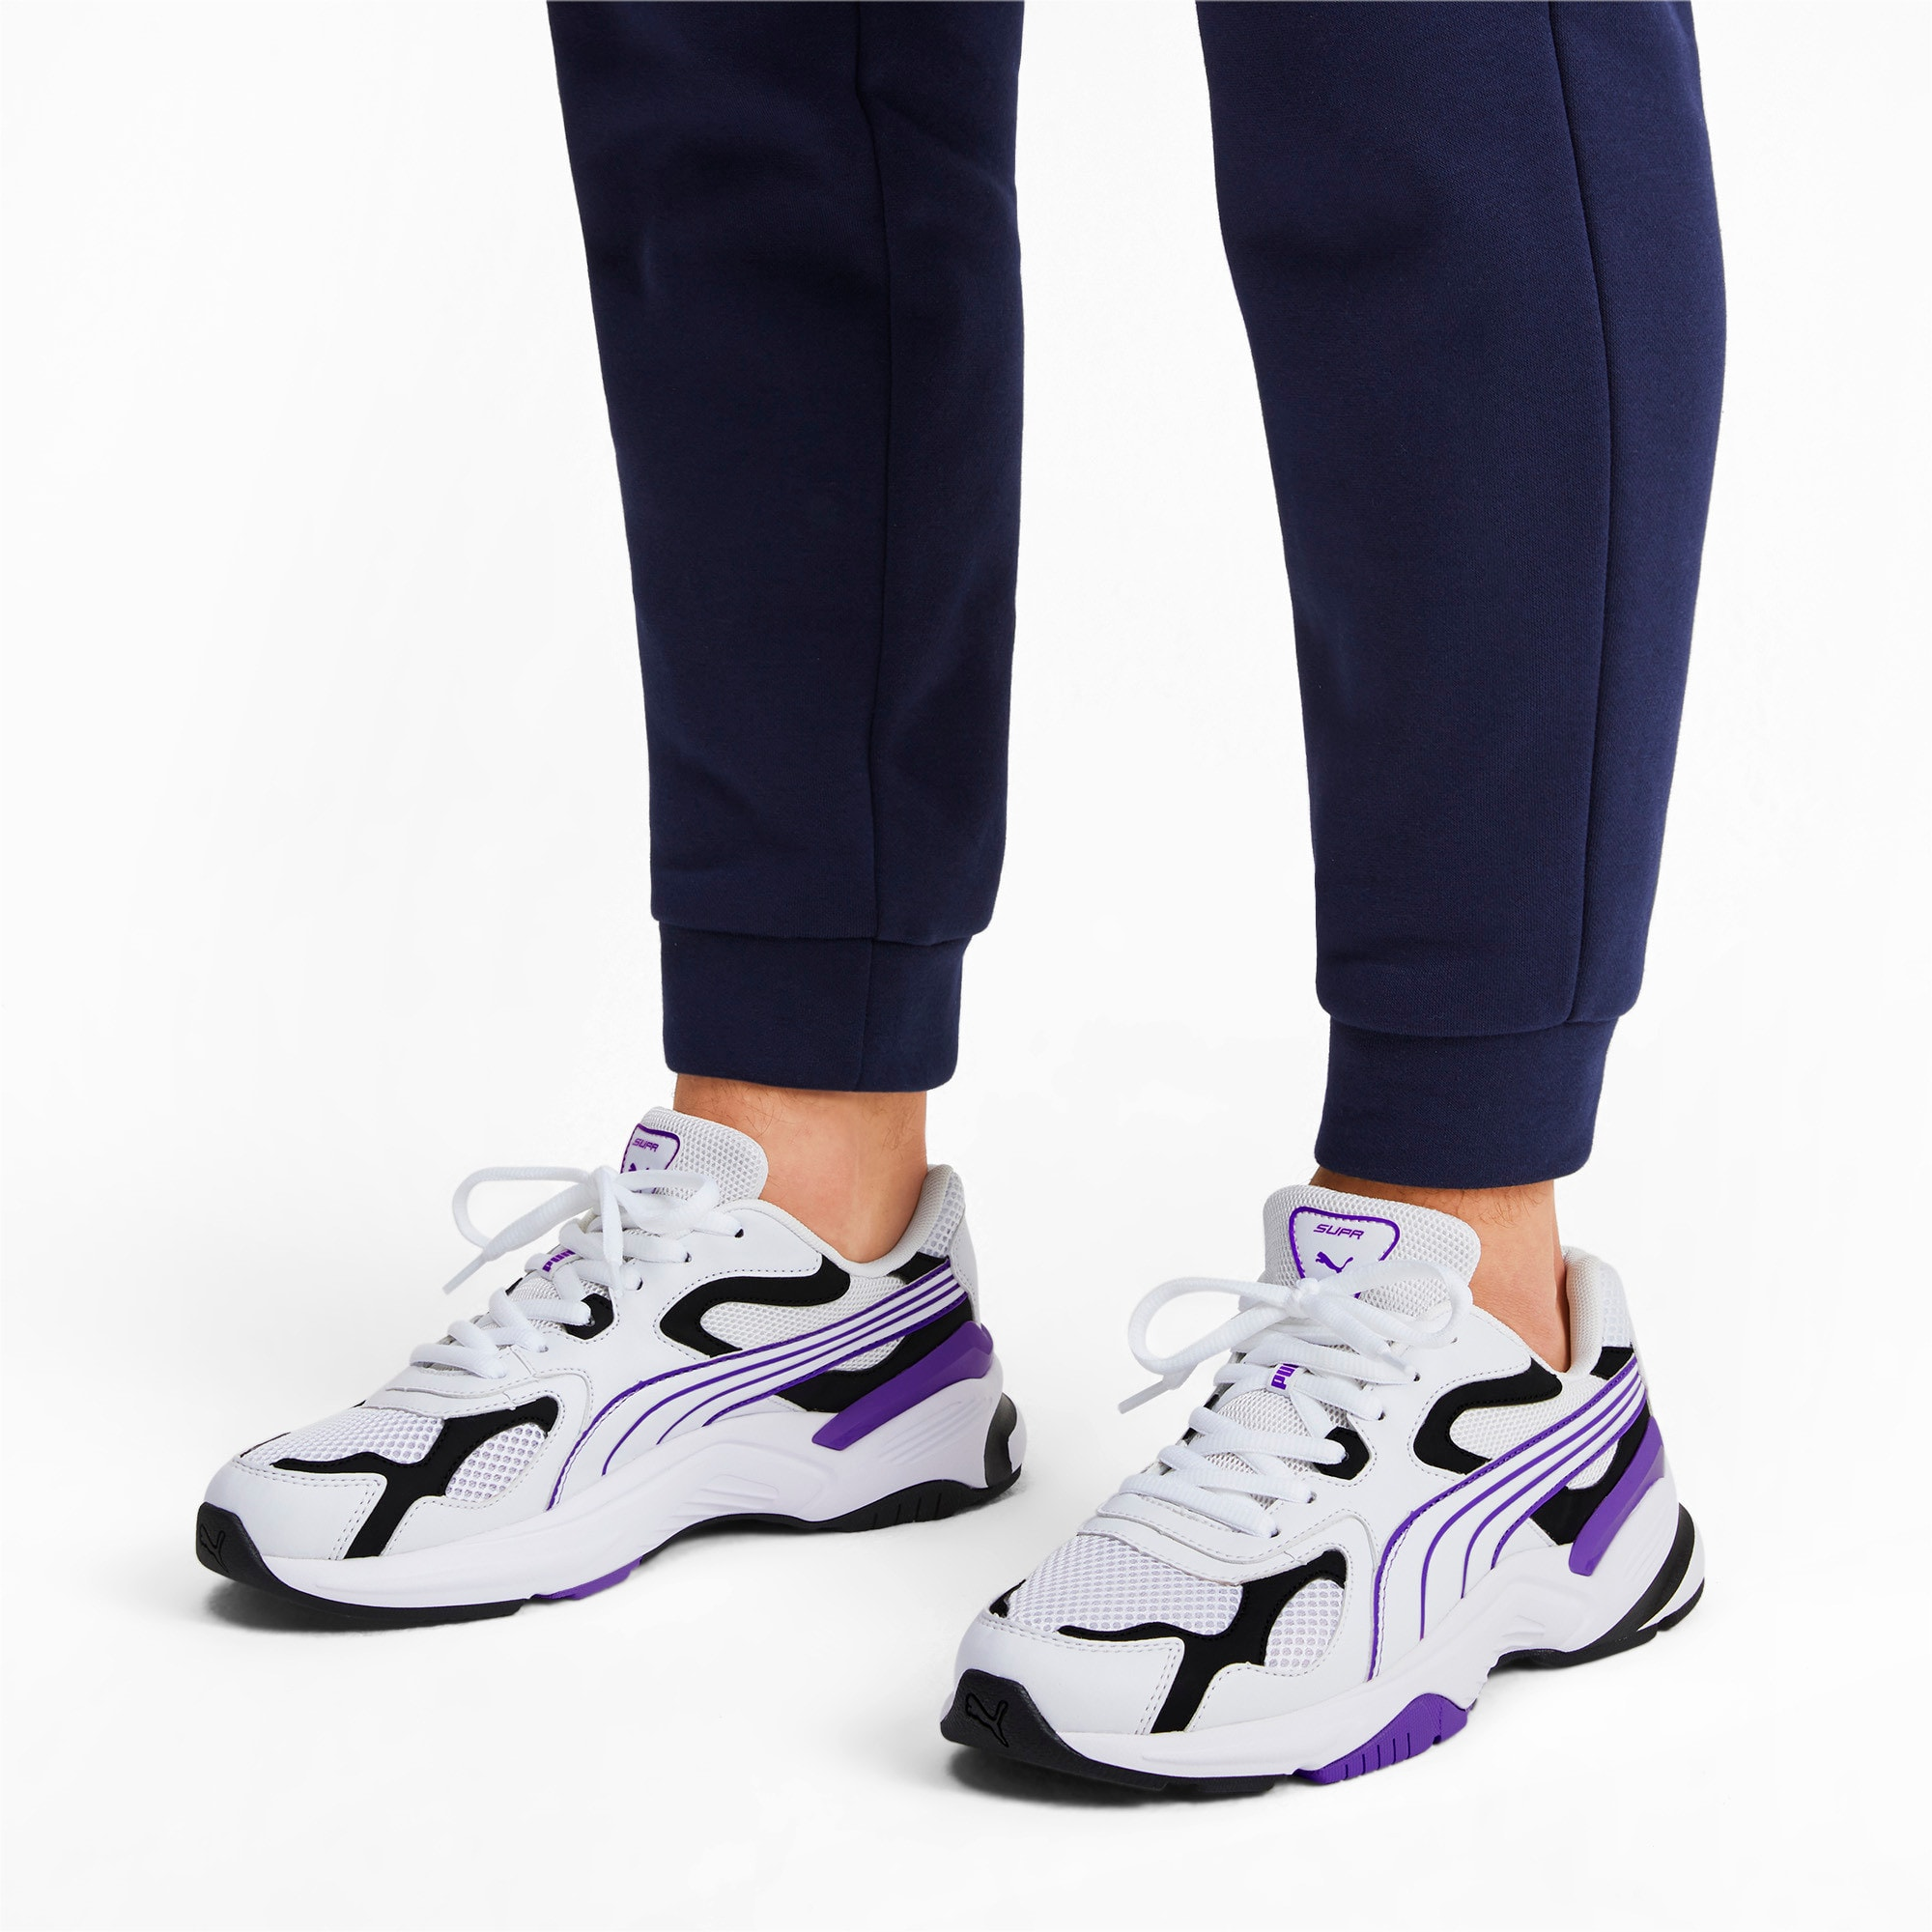 Thumbnail 2 of Axis SUPR Trainers, White-Black-Purple Glimmer, medium-IND